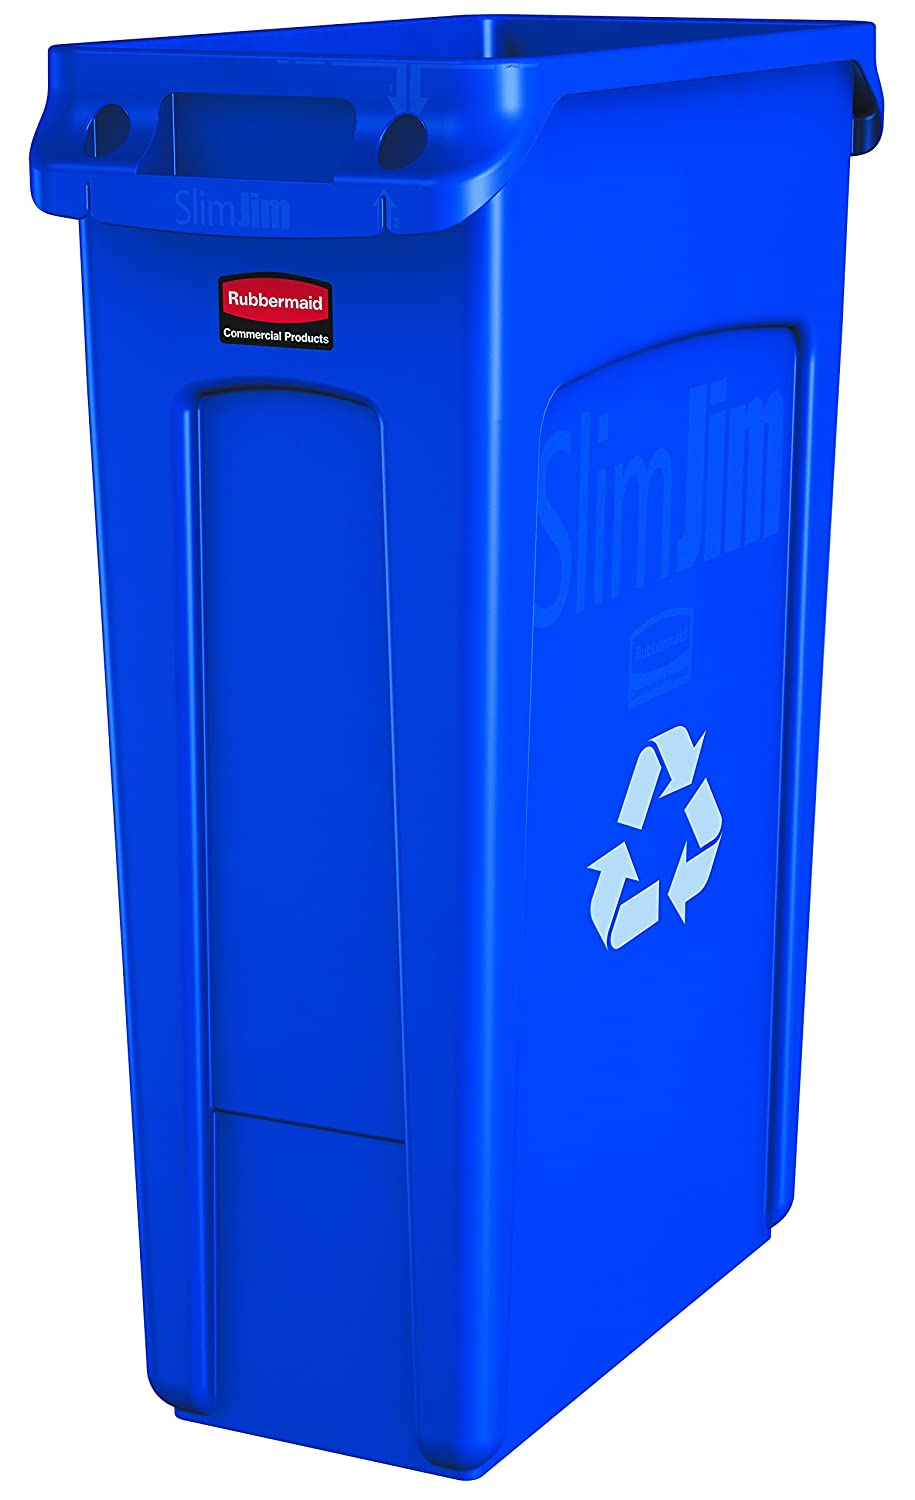 Rubbermaid Commercial Products Slim Jim Recycling Container with Venting Channels, Plastic, 23 Gallons, Blue with Recycling Logo (FG354007BLUE)